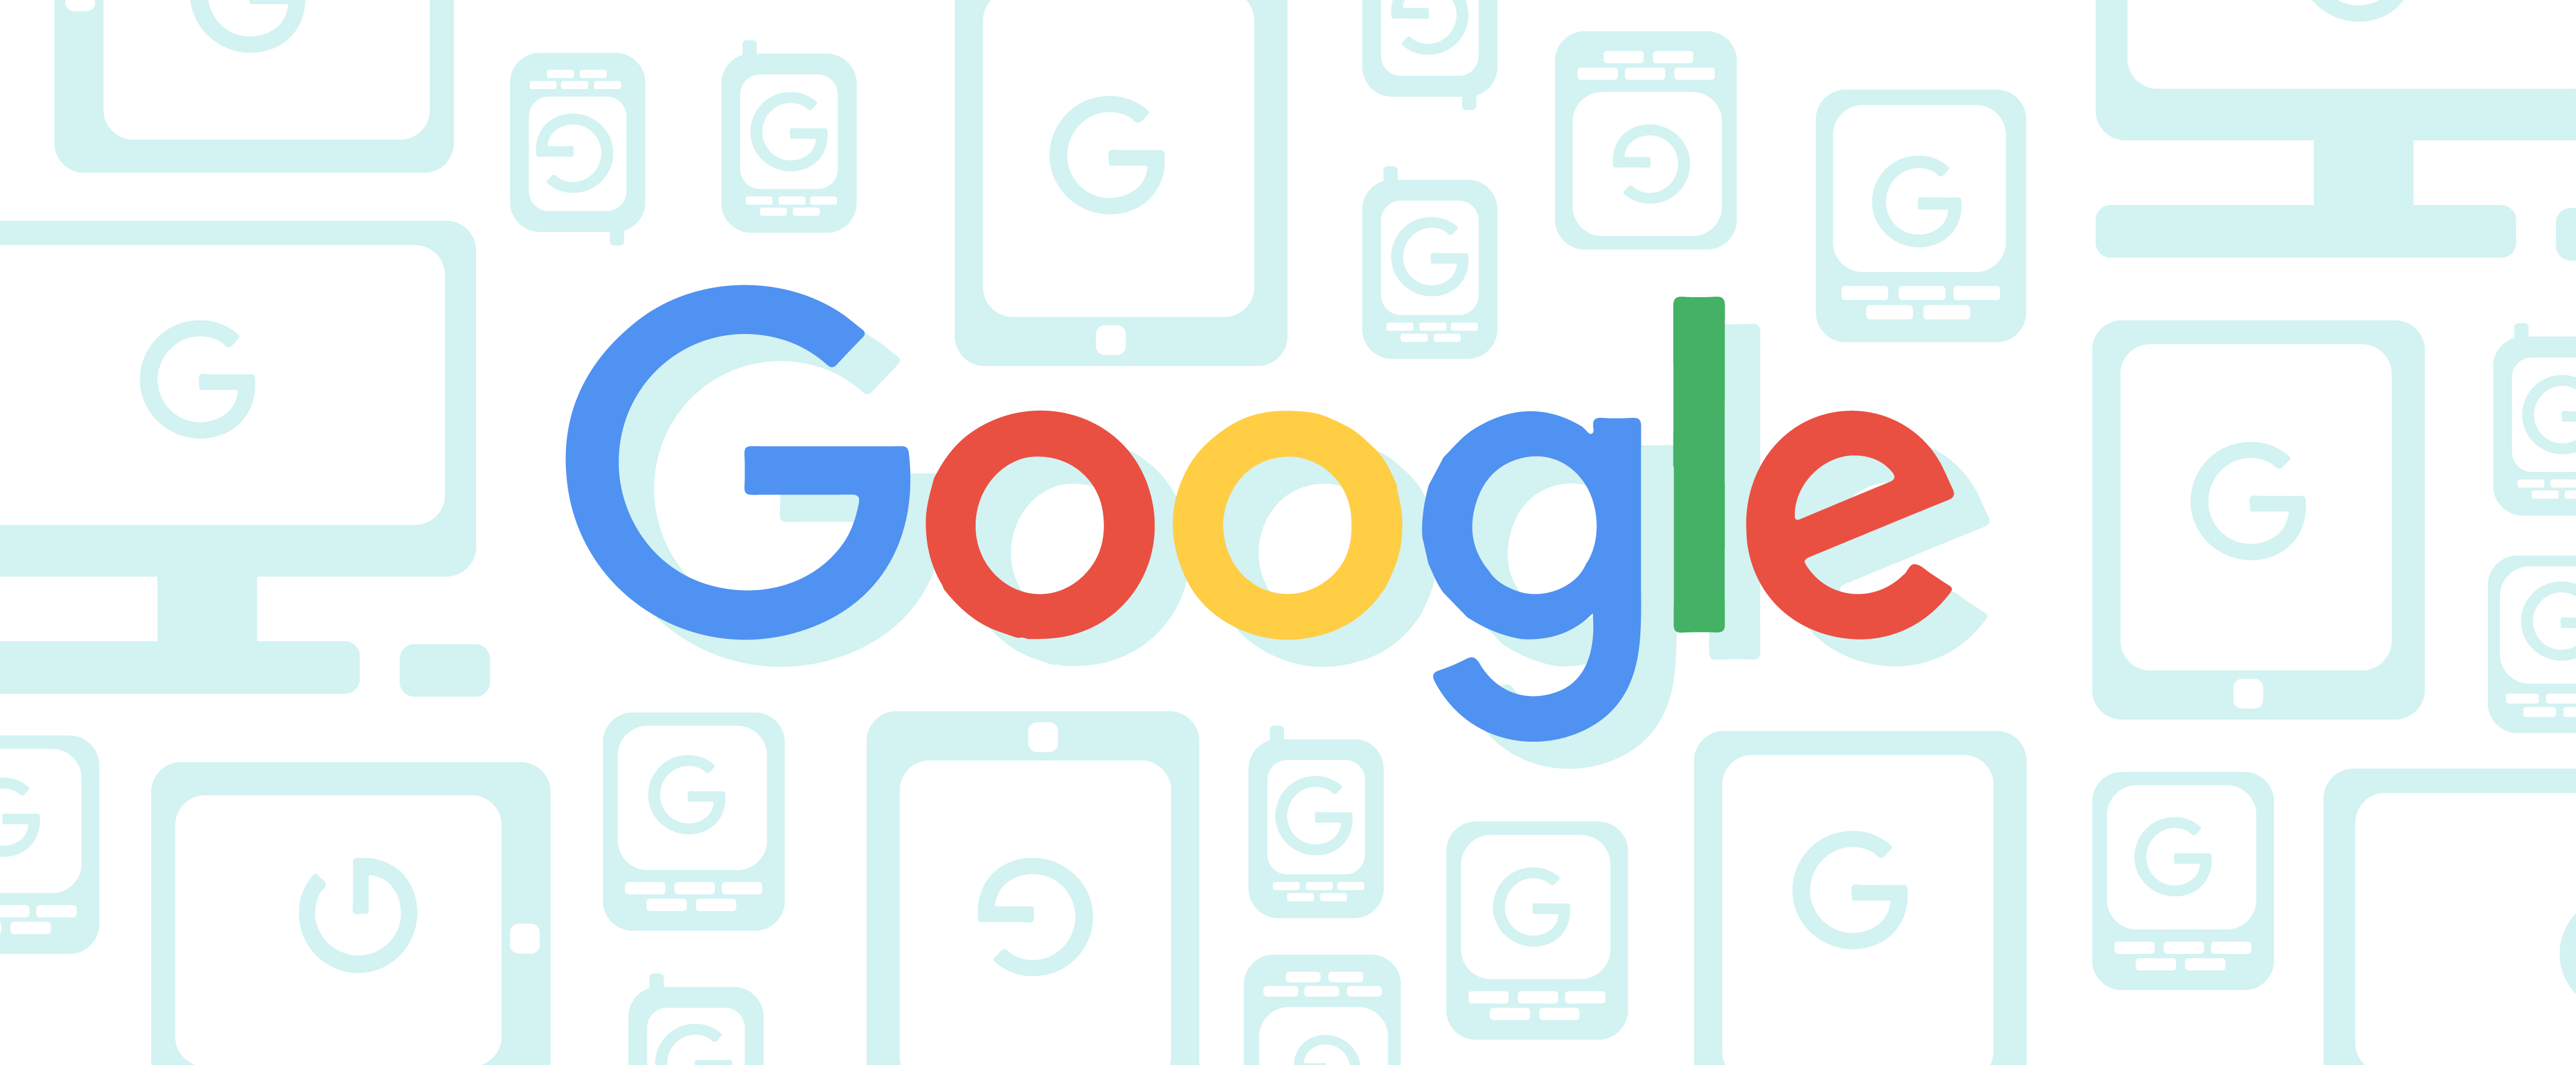 Does Google Check Your Privacy Policy?